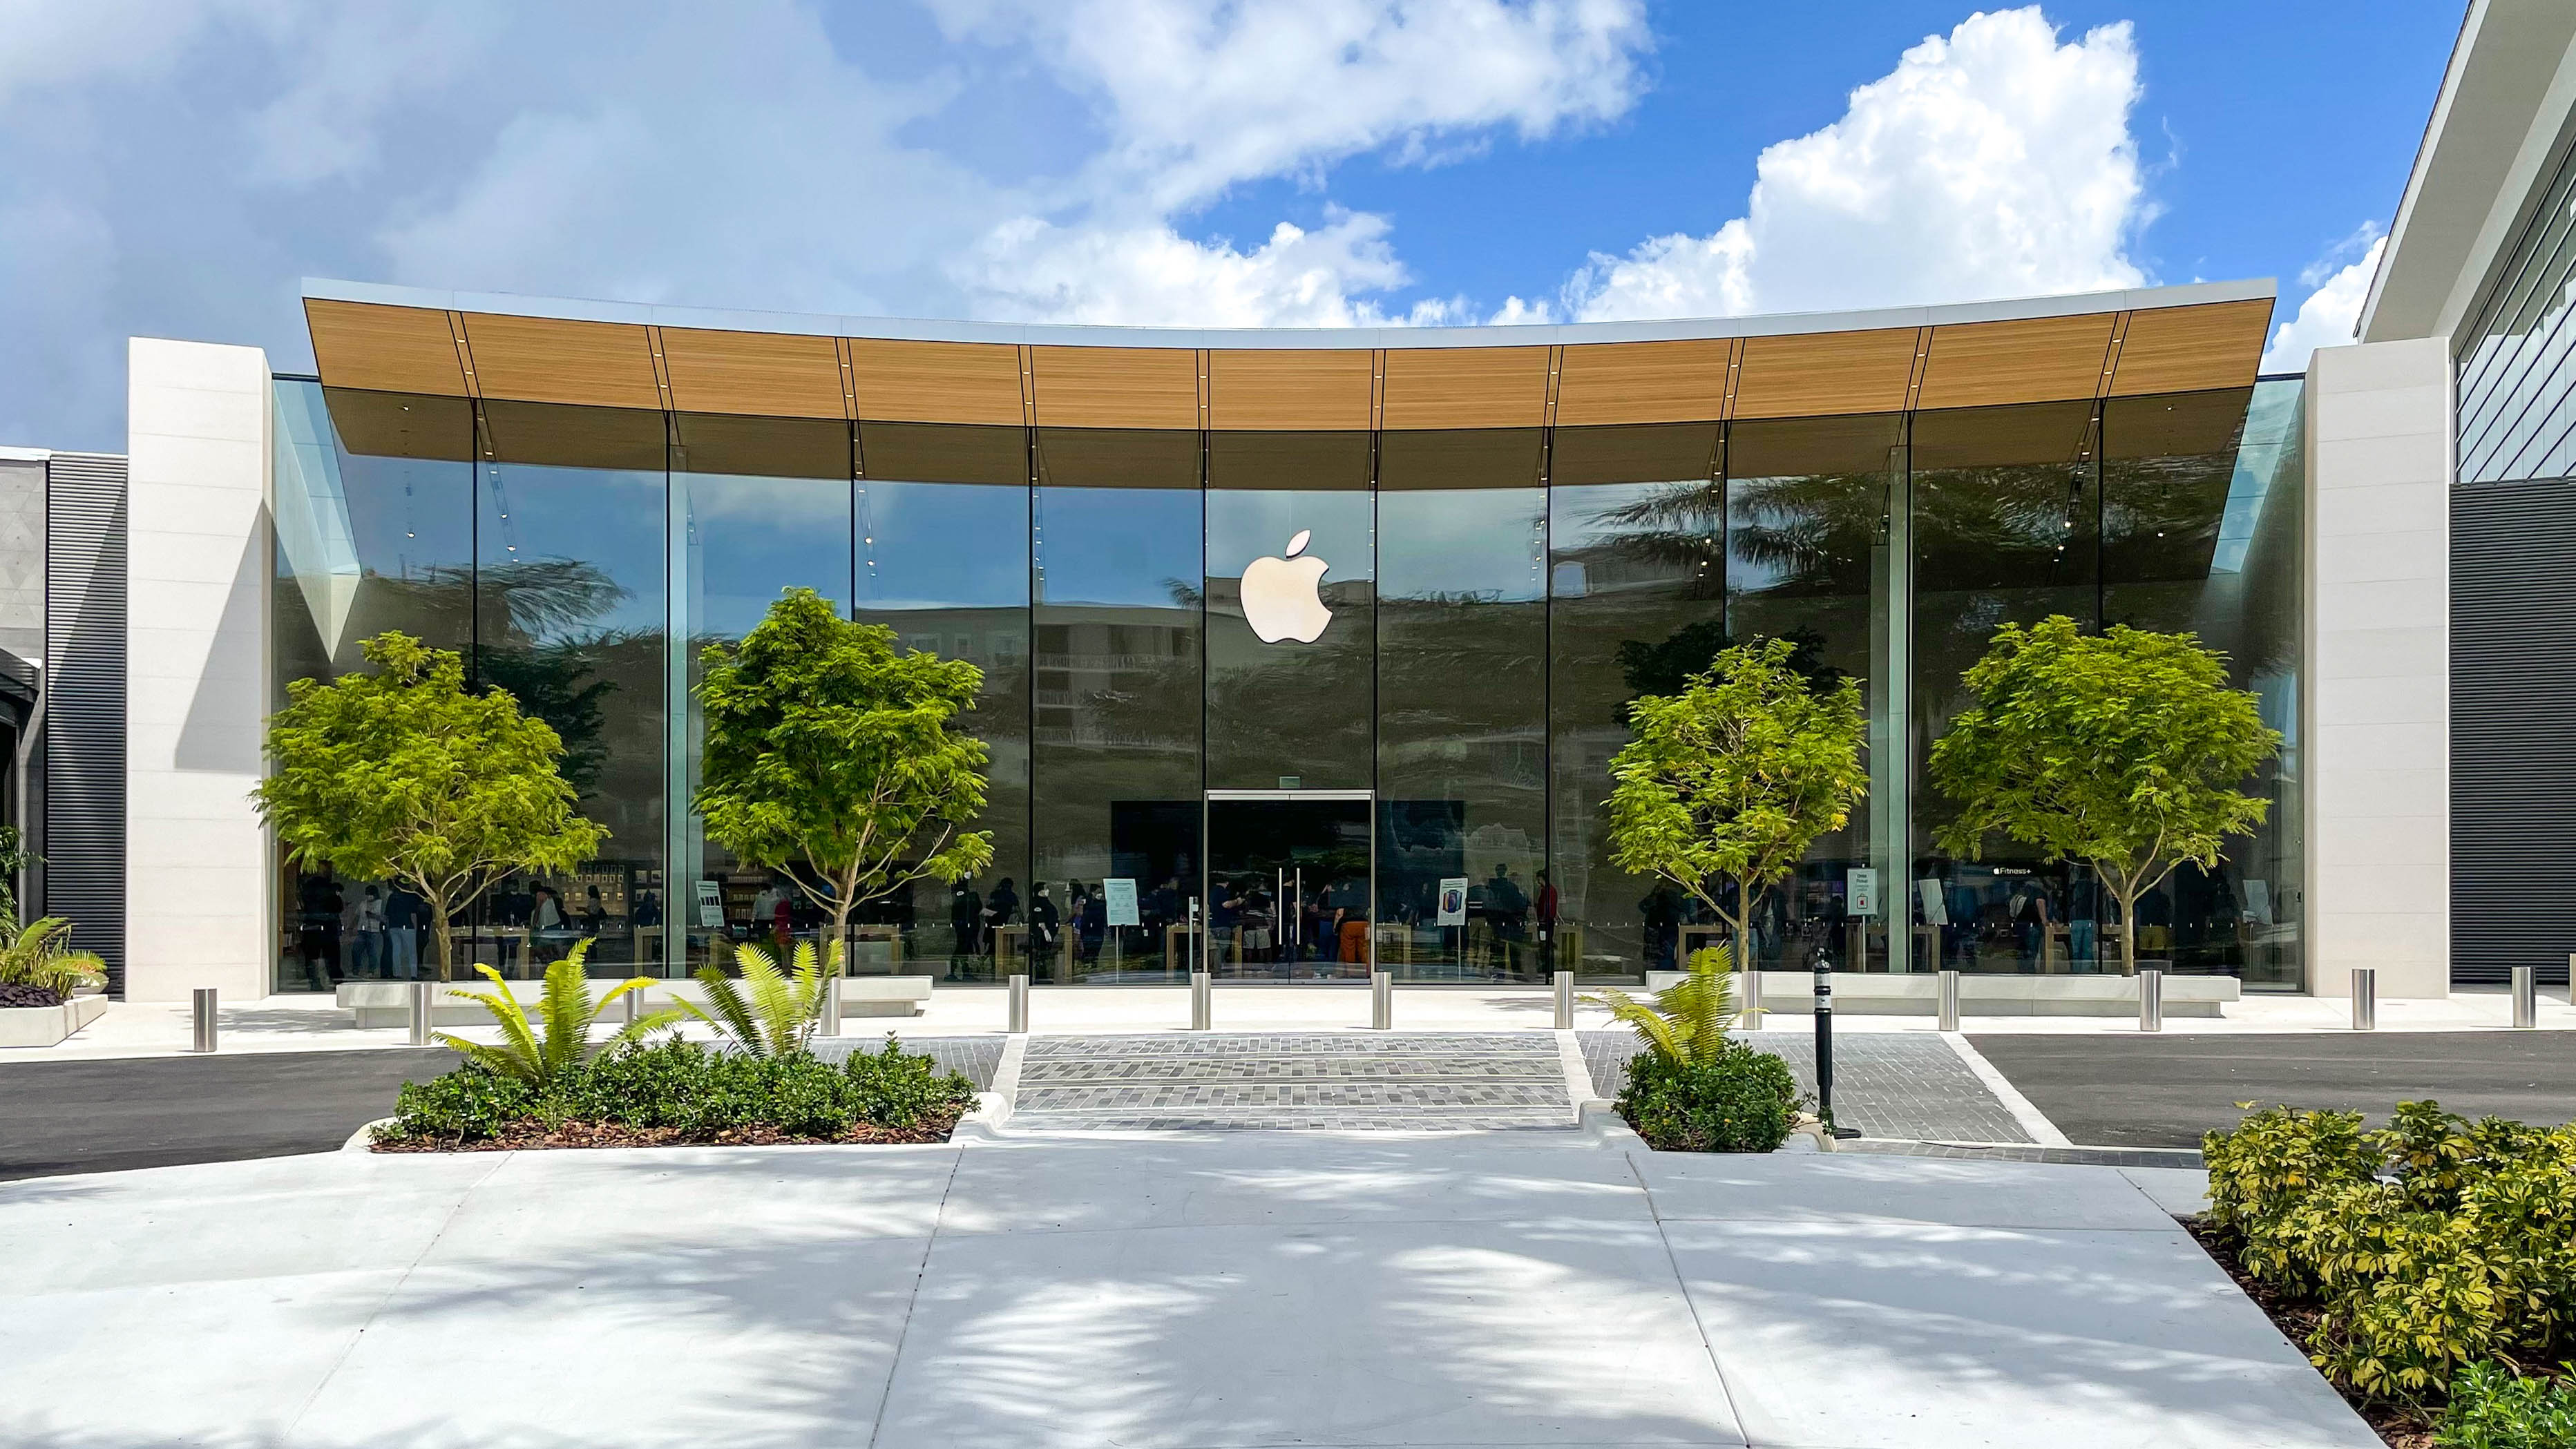 The front entrance to Apple Dadeland.